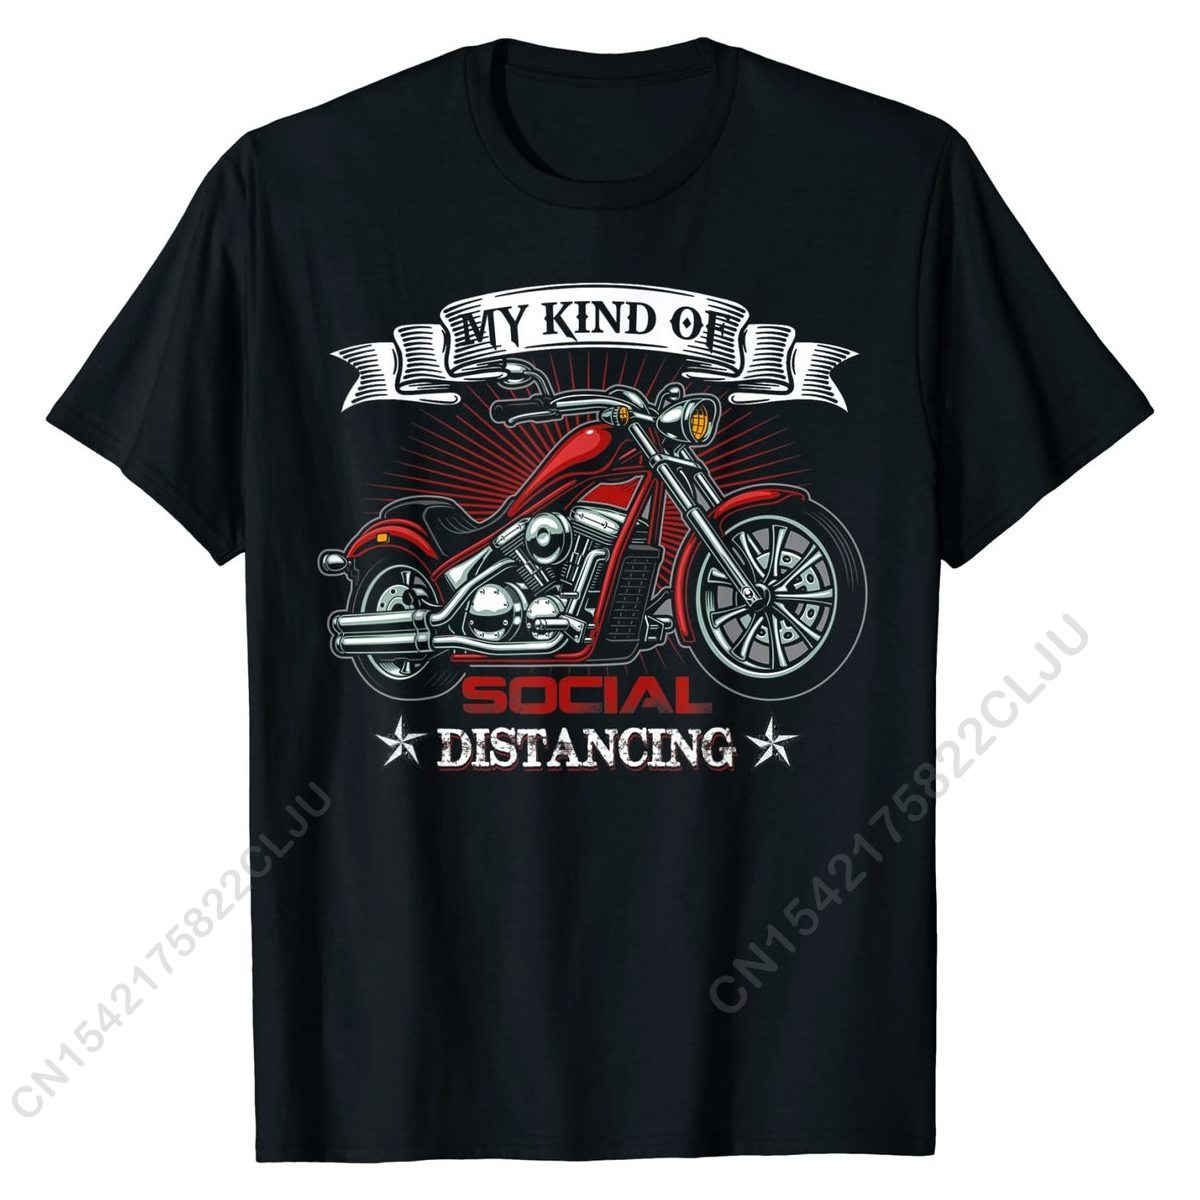 My Kind Of Social Distancing Funny Motorcycle Biker Quotes T-Shirt Cotton Tops & Tees For Men Summer T Shirt Custom New Coming